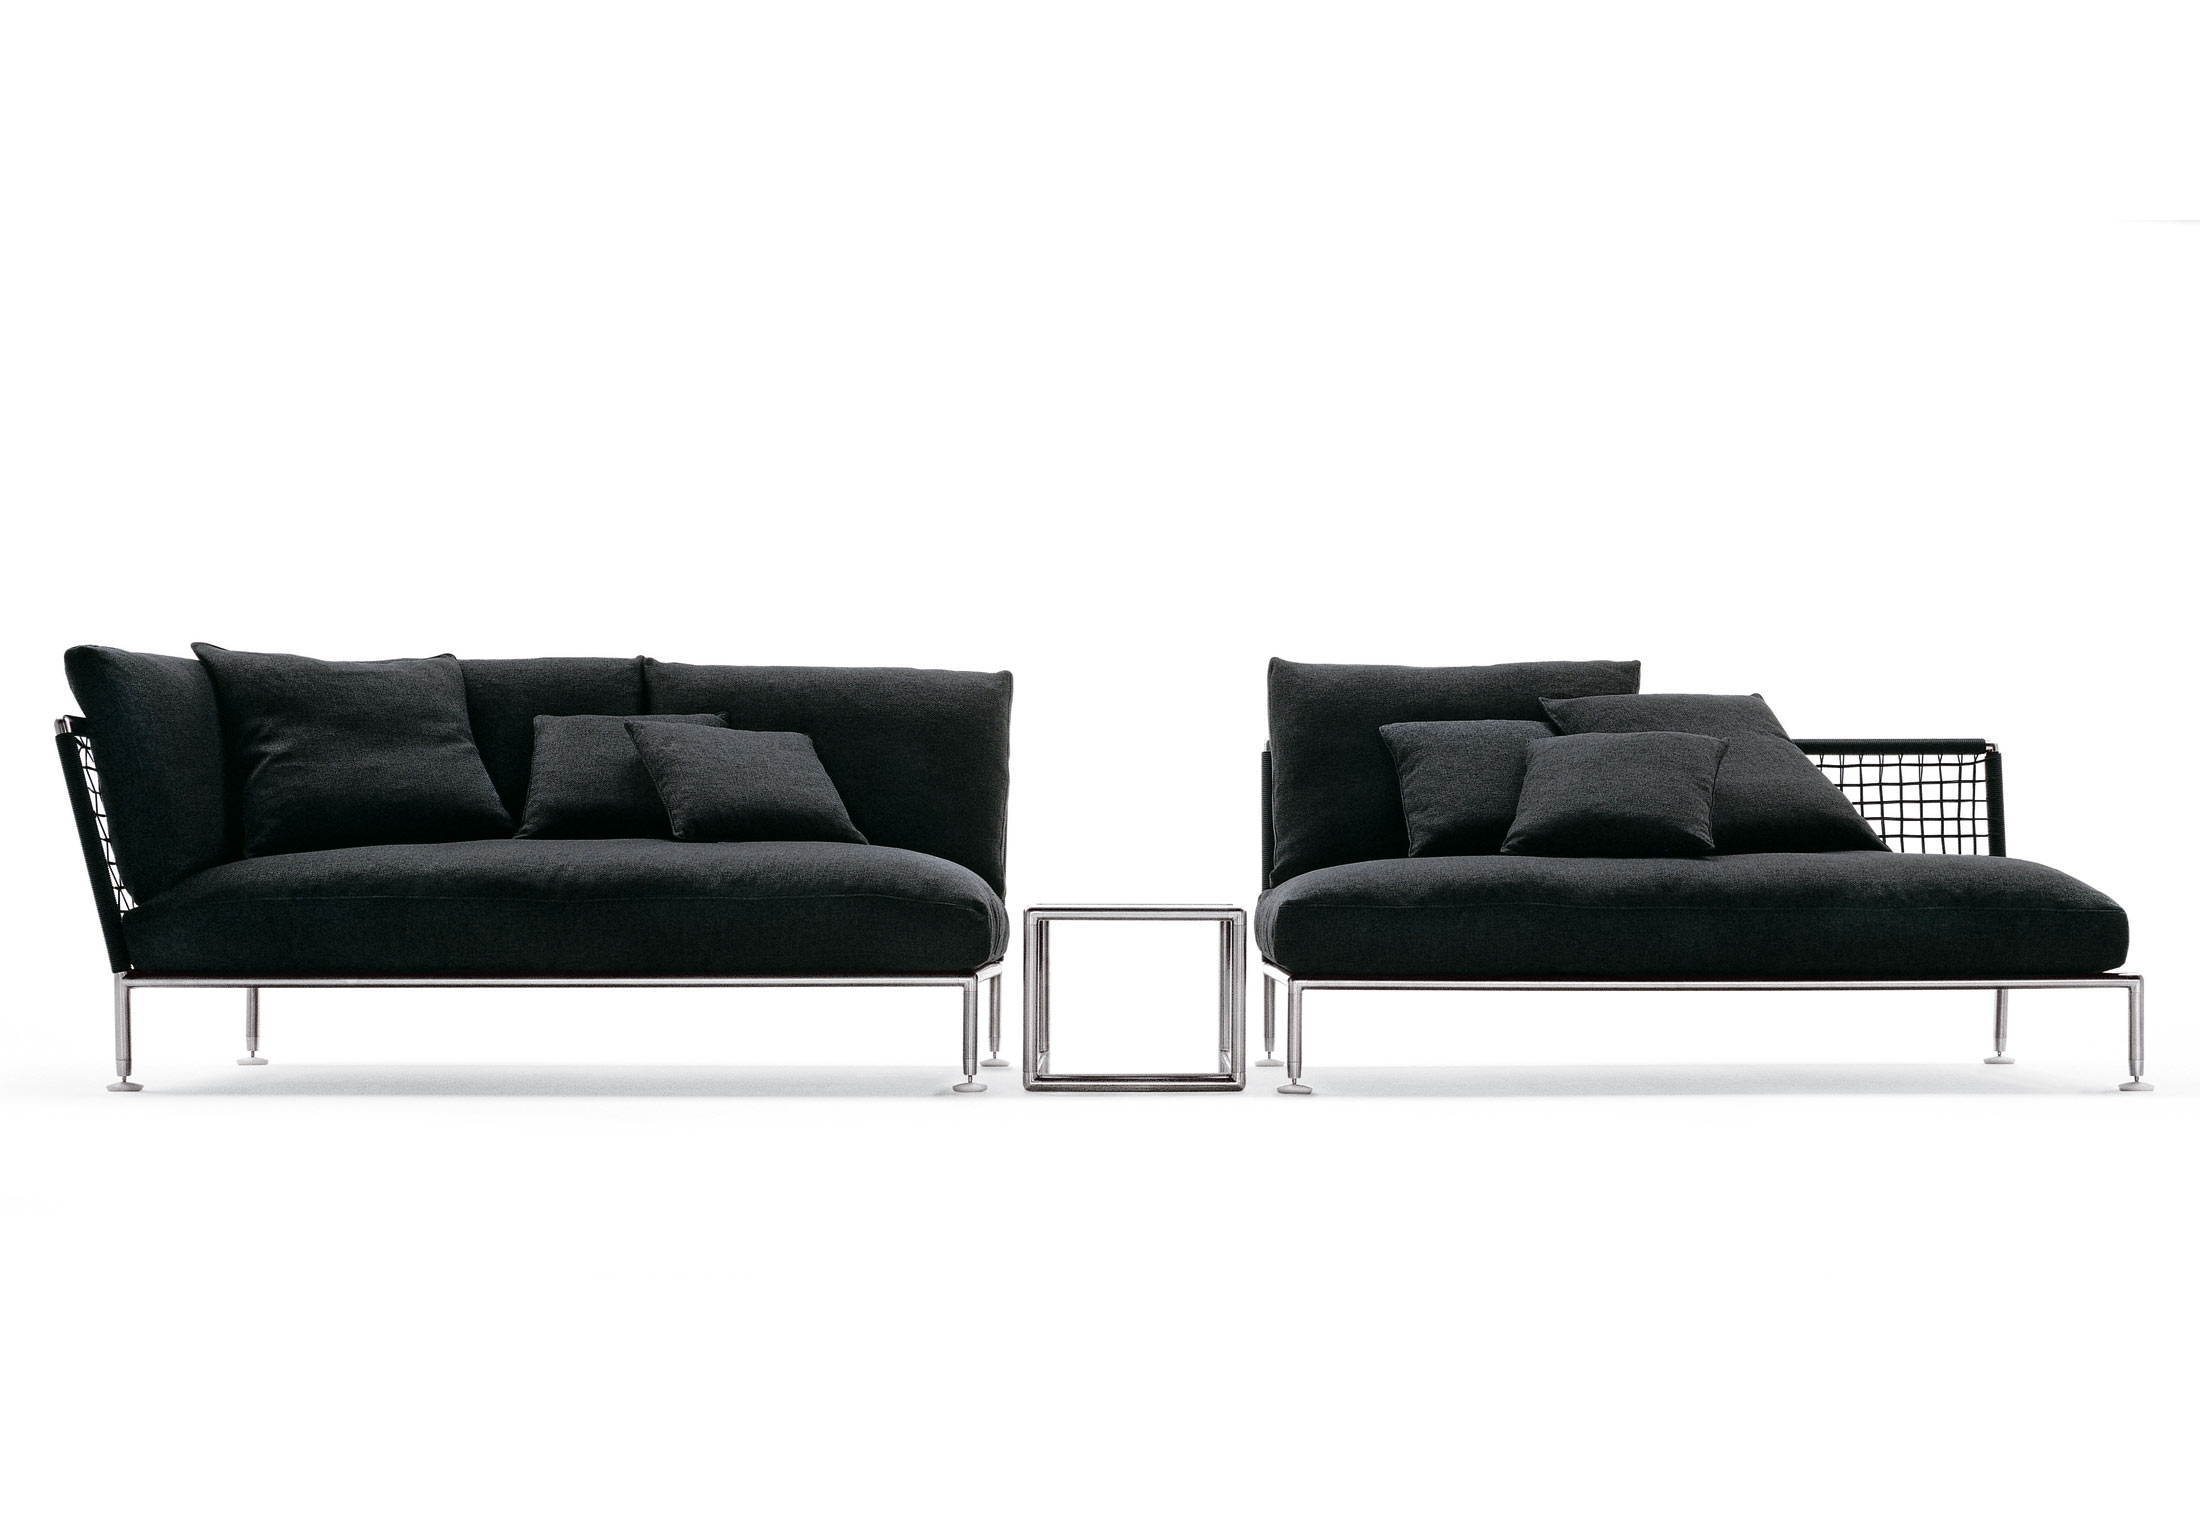 nest couchtisch von coro stylepark. Black Bedroom Furniture Sets. Home Design Ideas